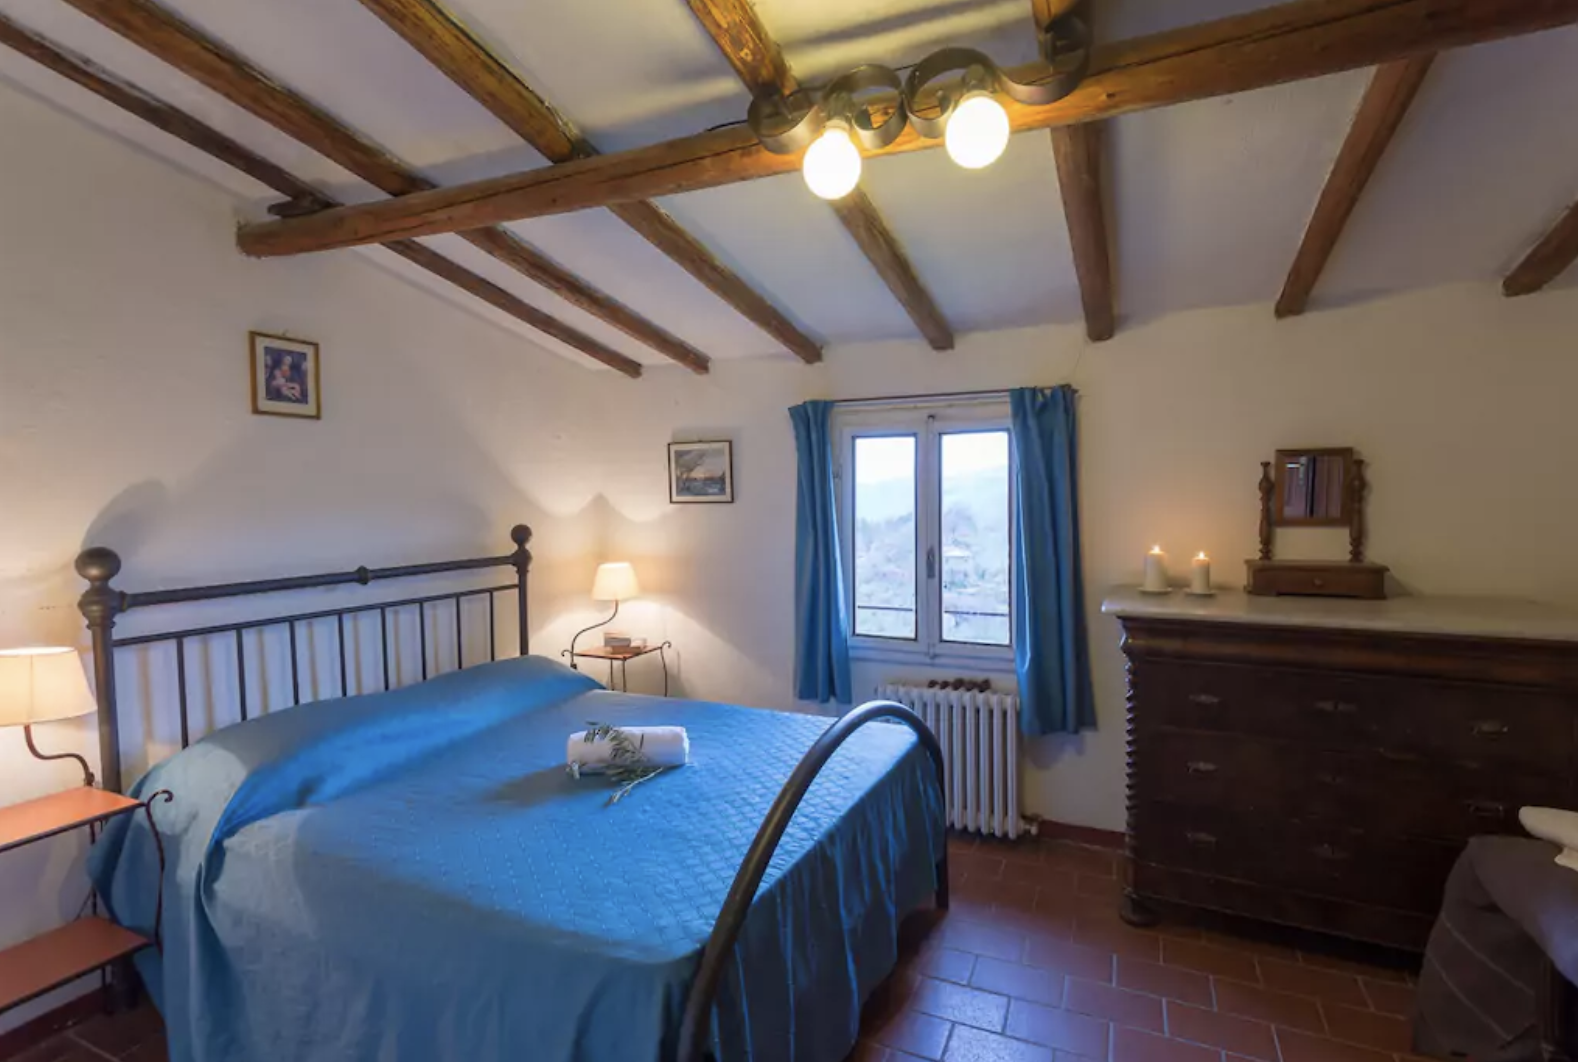 Castello 9 Master Bedroom (2 bedroom apartment sleeps up to 6 guests)